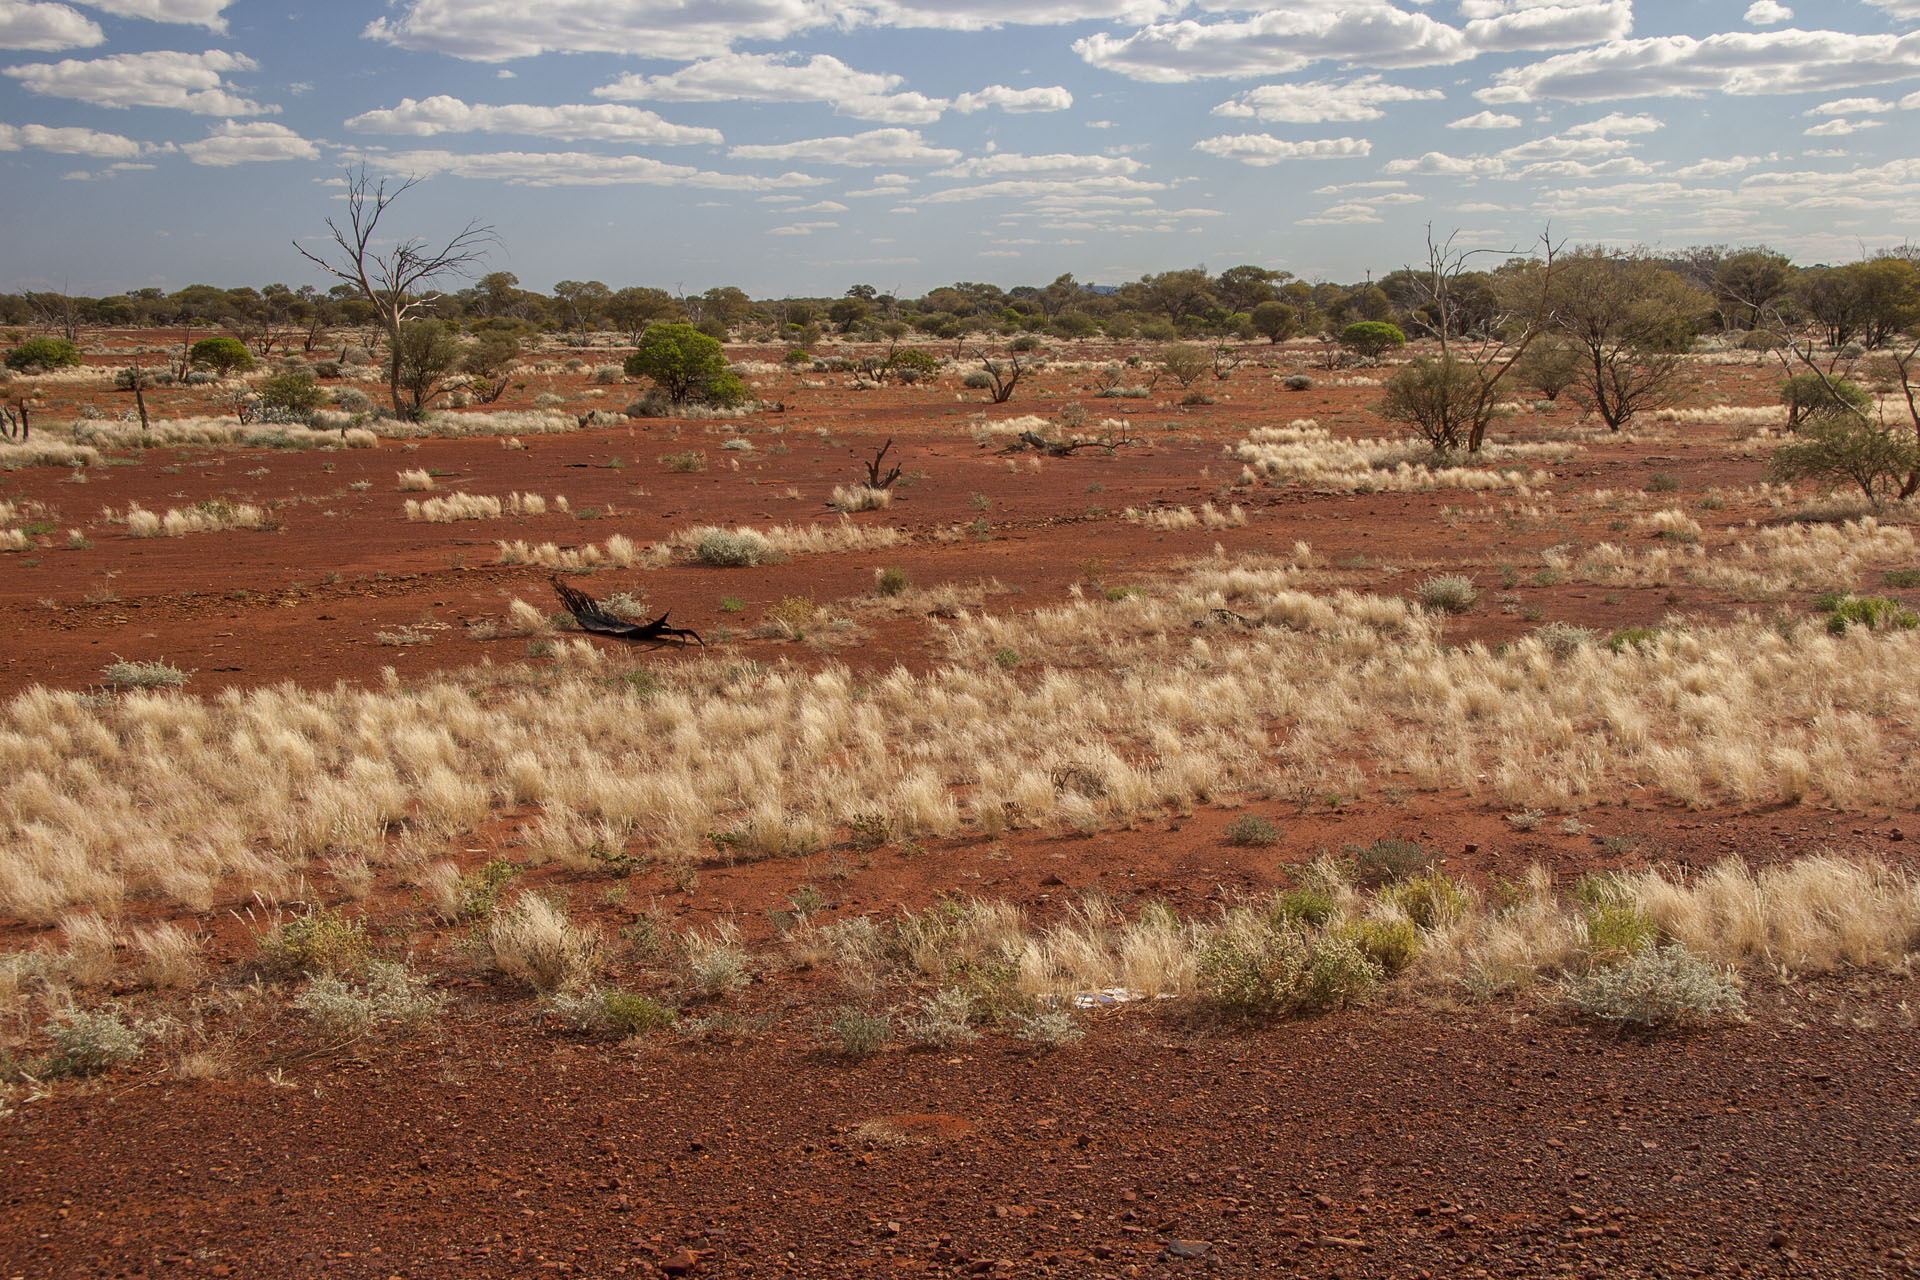 Deep red soil and golden spinifex: Pilbara is close.